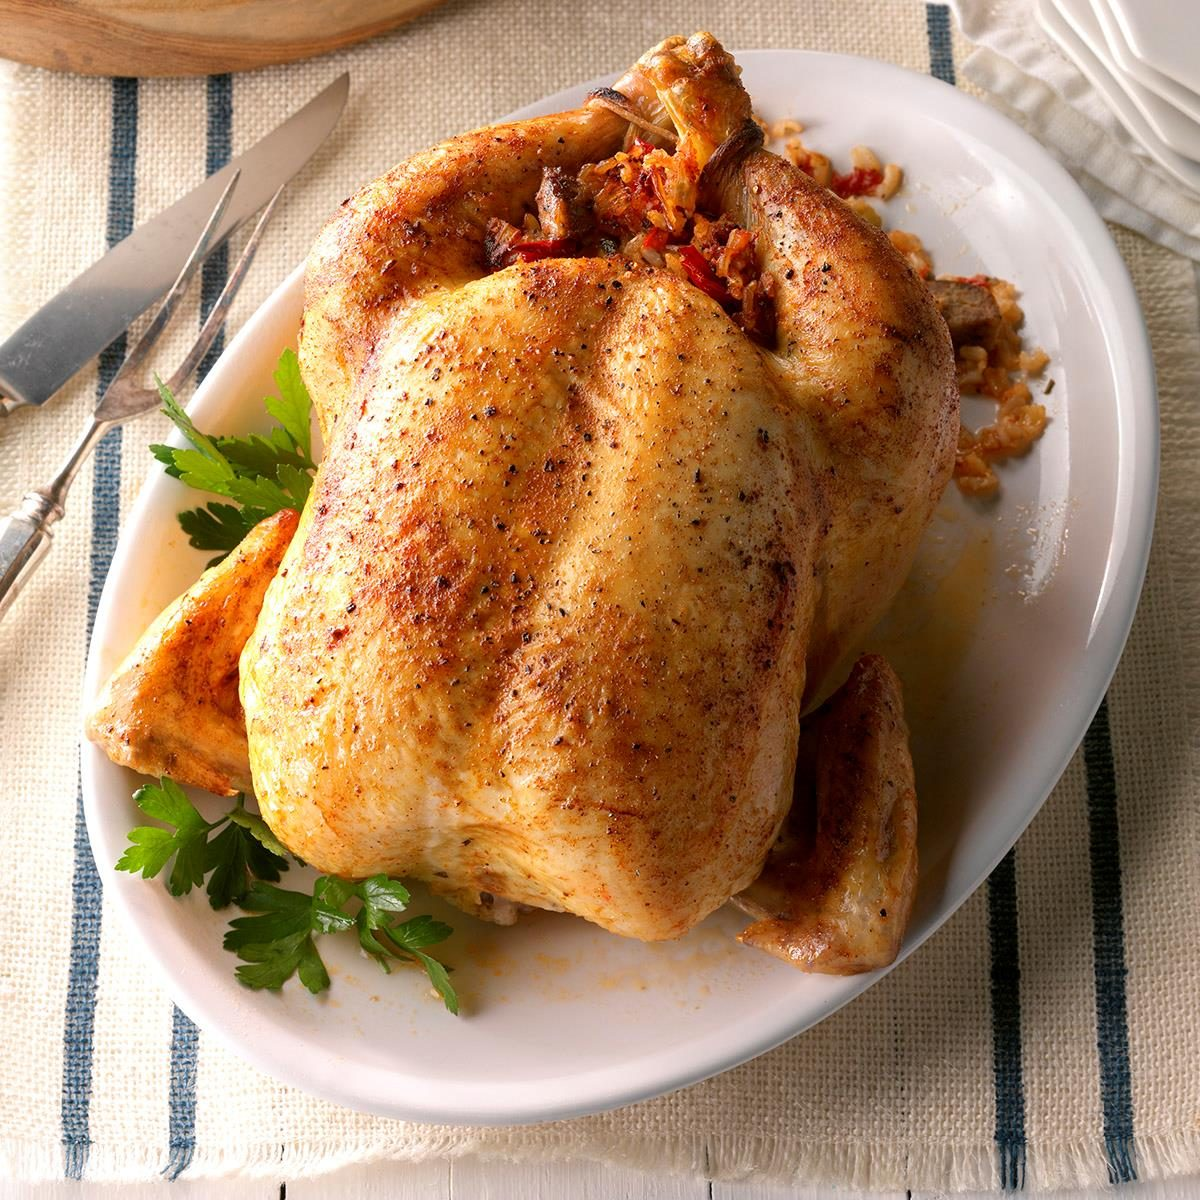 Roast Chicken with Creole Stuffing